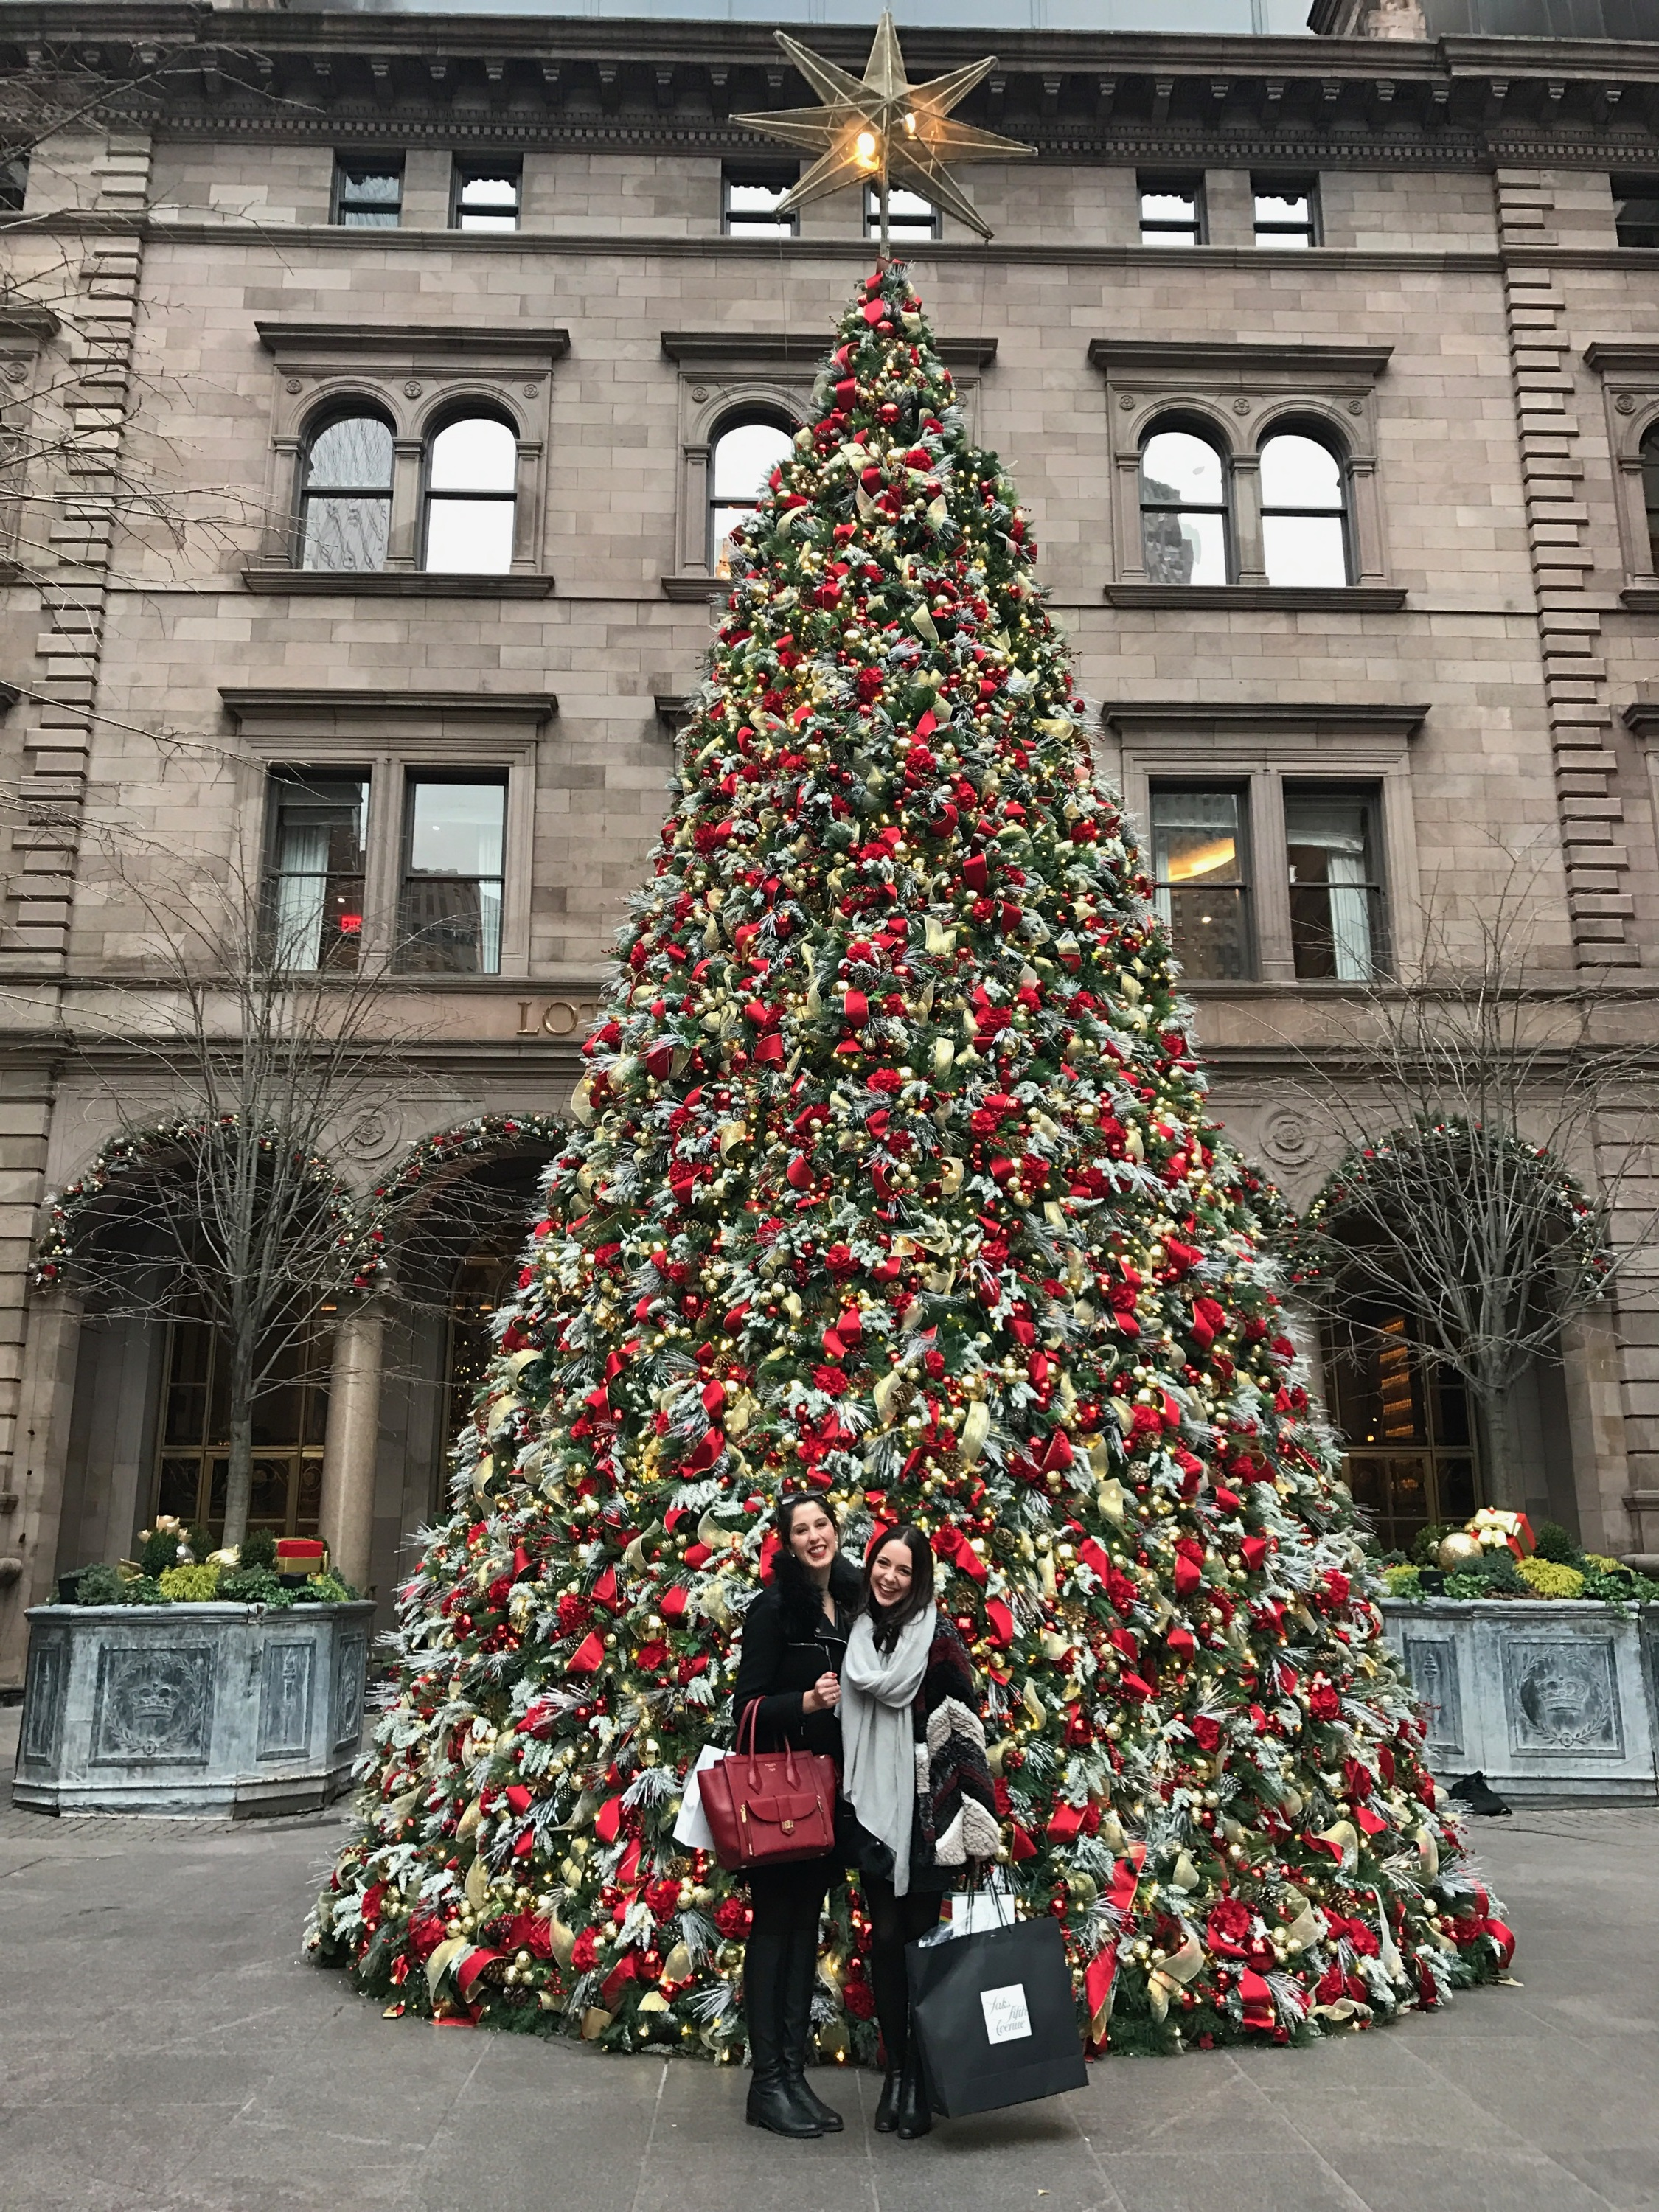 Posing in front of The Palace Hotel's Christmas tree... Has anyone seen Serena?